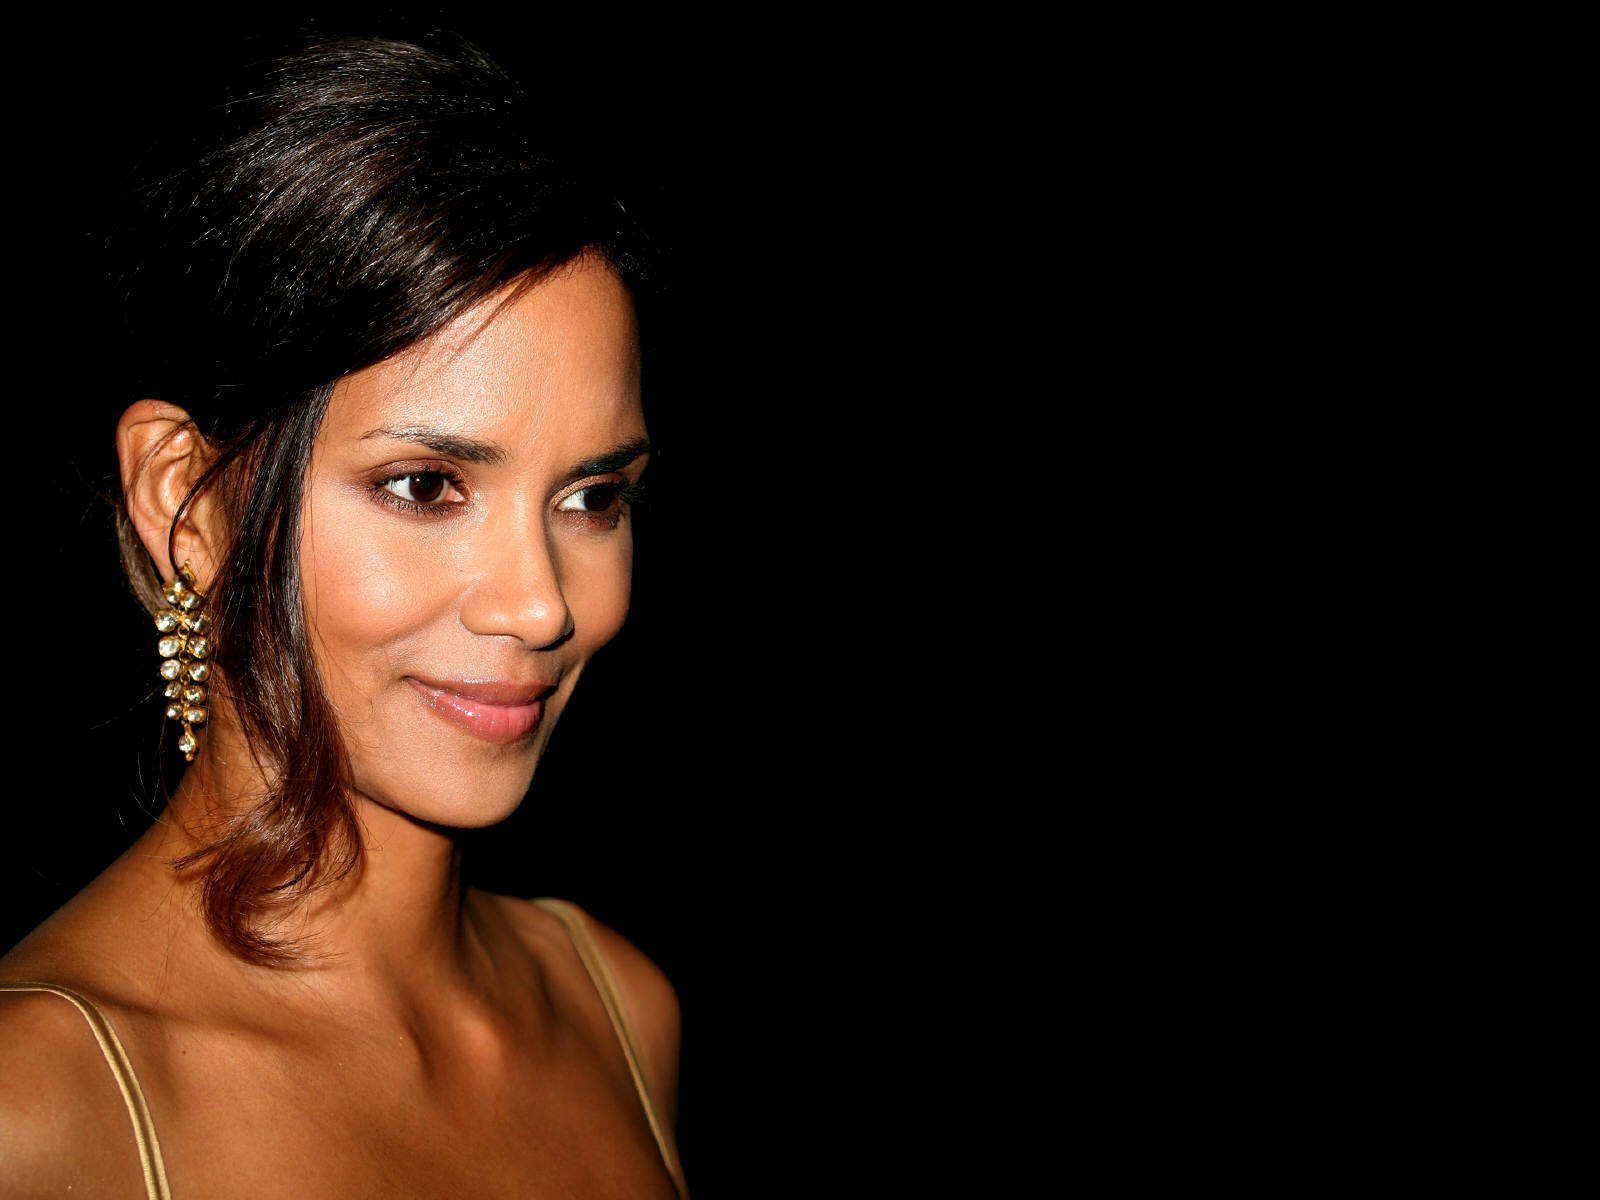 halle berry wallpapers 1920 - photo #14